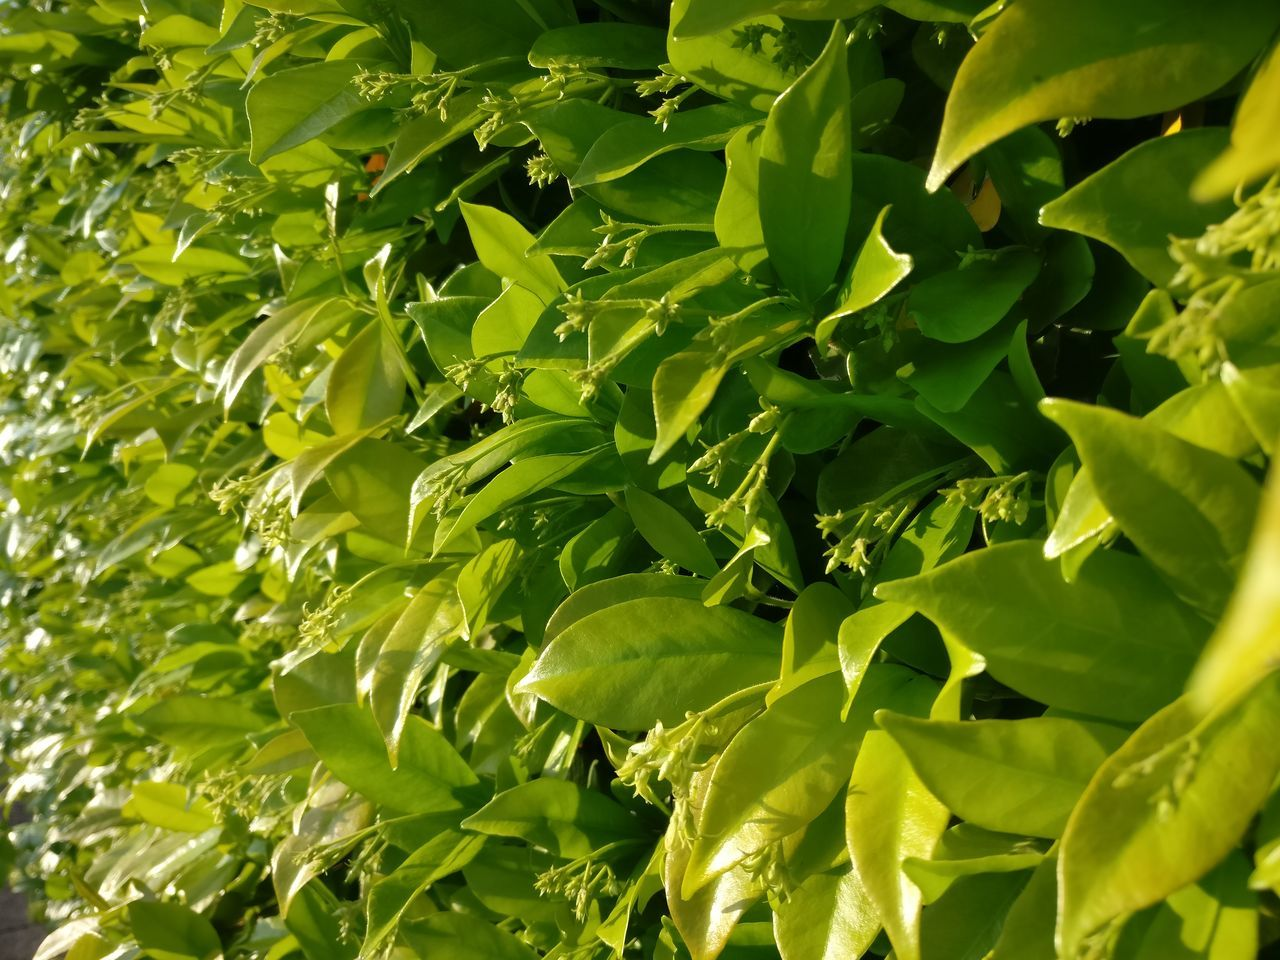 green color, leaf, growth, no people, nature, plant, food, full frame, food and drink, vegetable, day, outdoors, healthy eating, freshness, beauty in nature, close-up